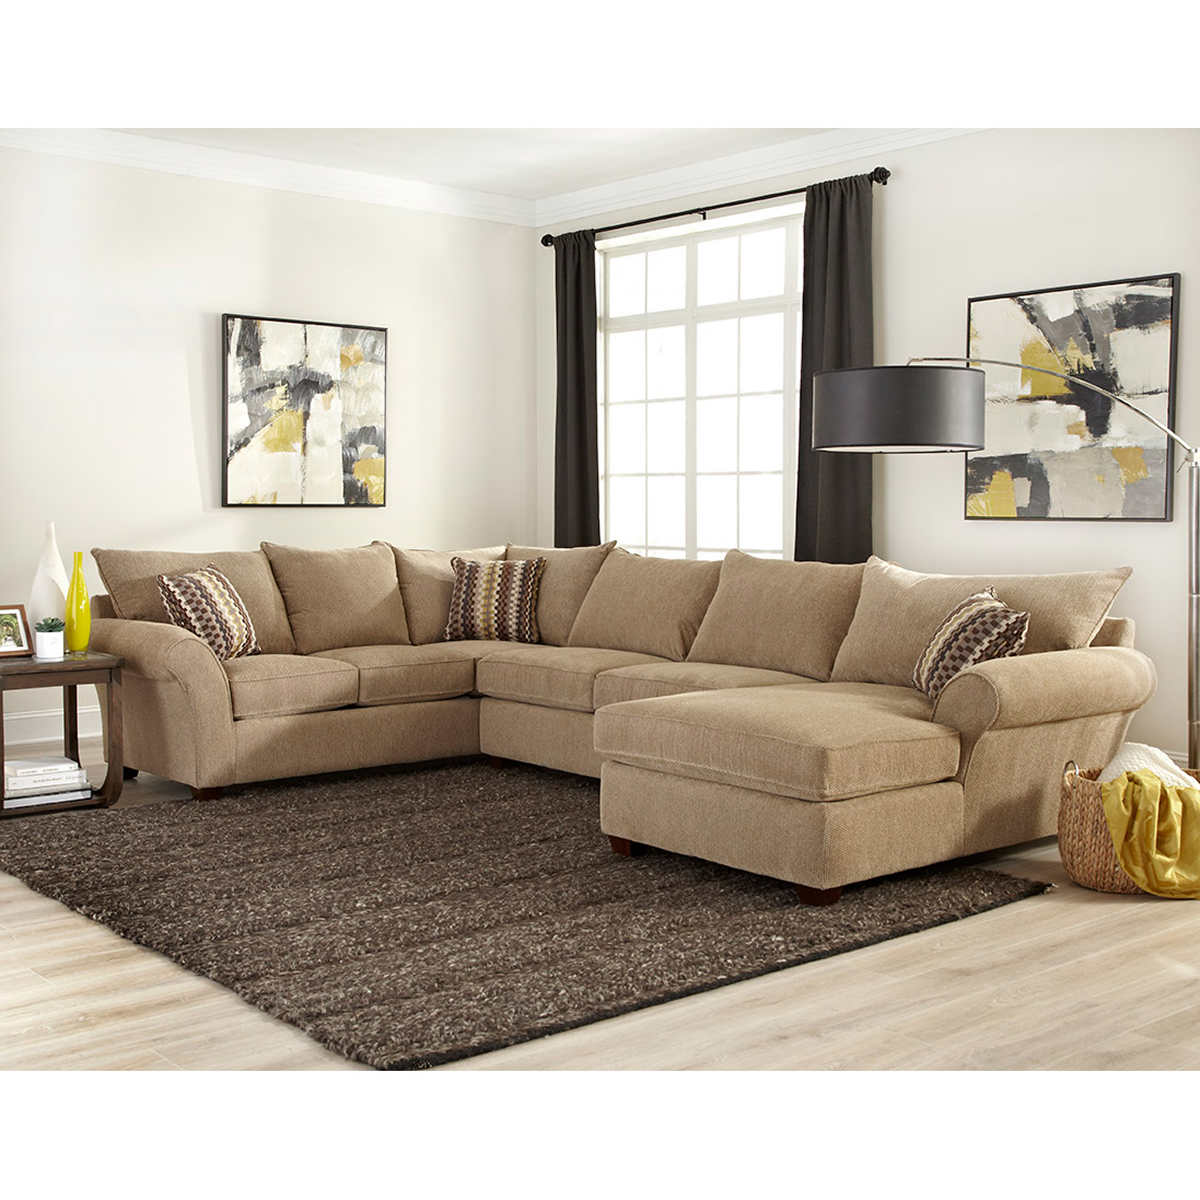 Sectional Fabric Sofa Living Room Modern Furniture Contemporary TheSofa